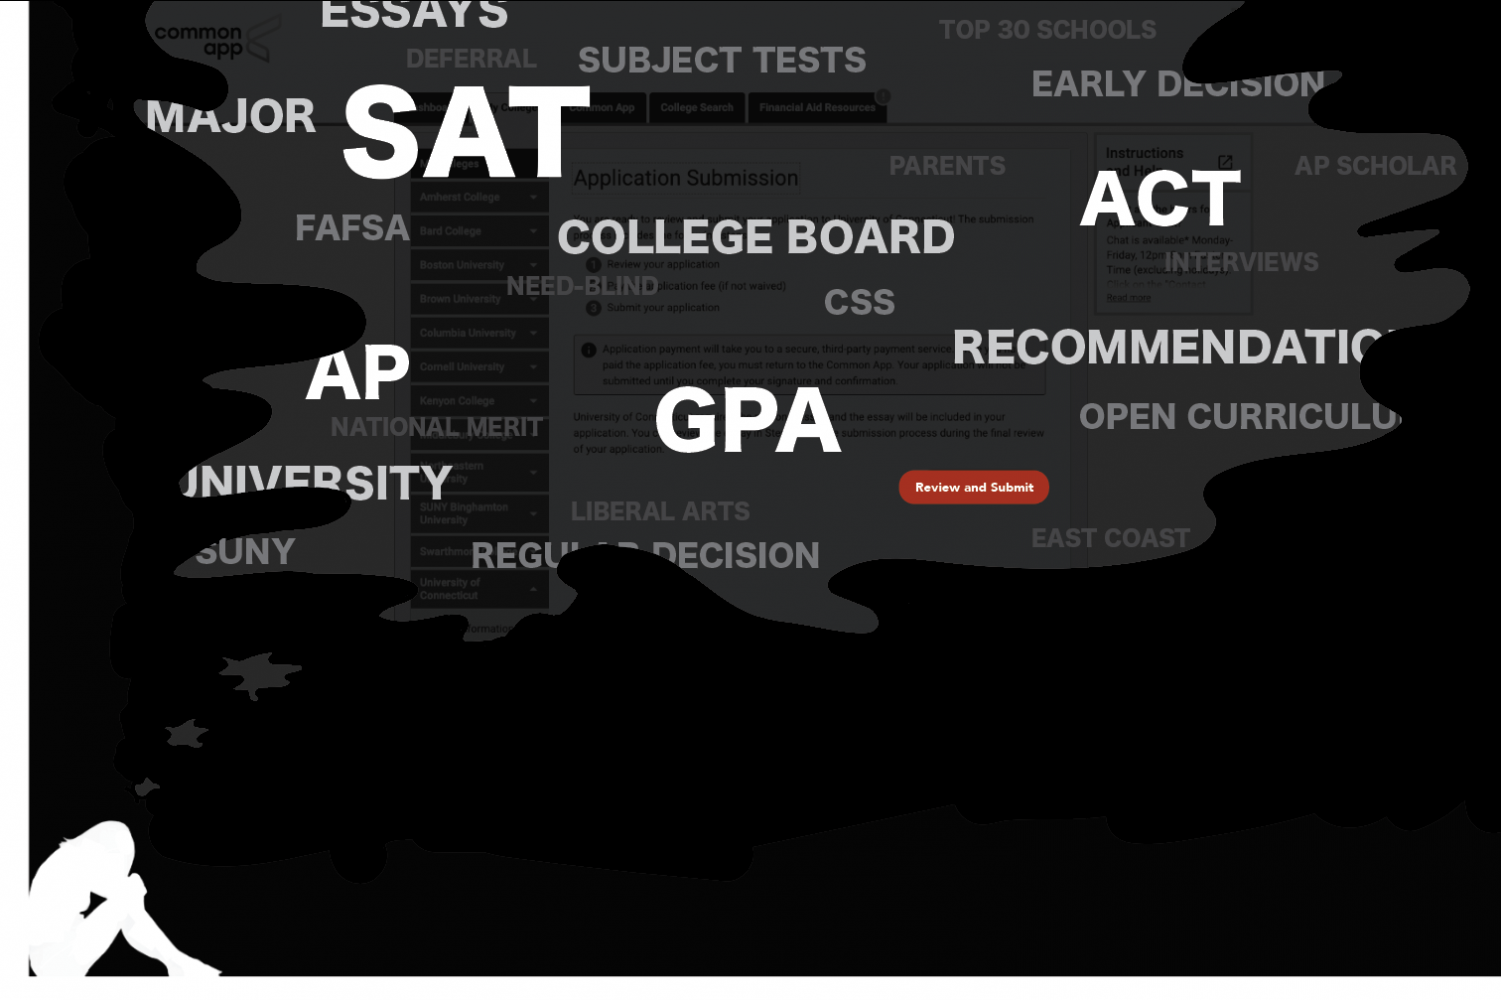 For many college-bound students, the application process induces overwhelming anxiety.